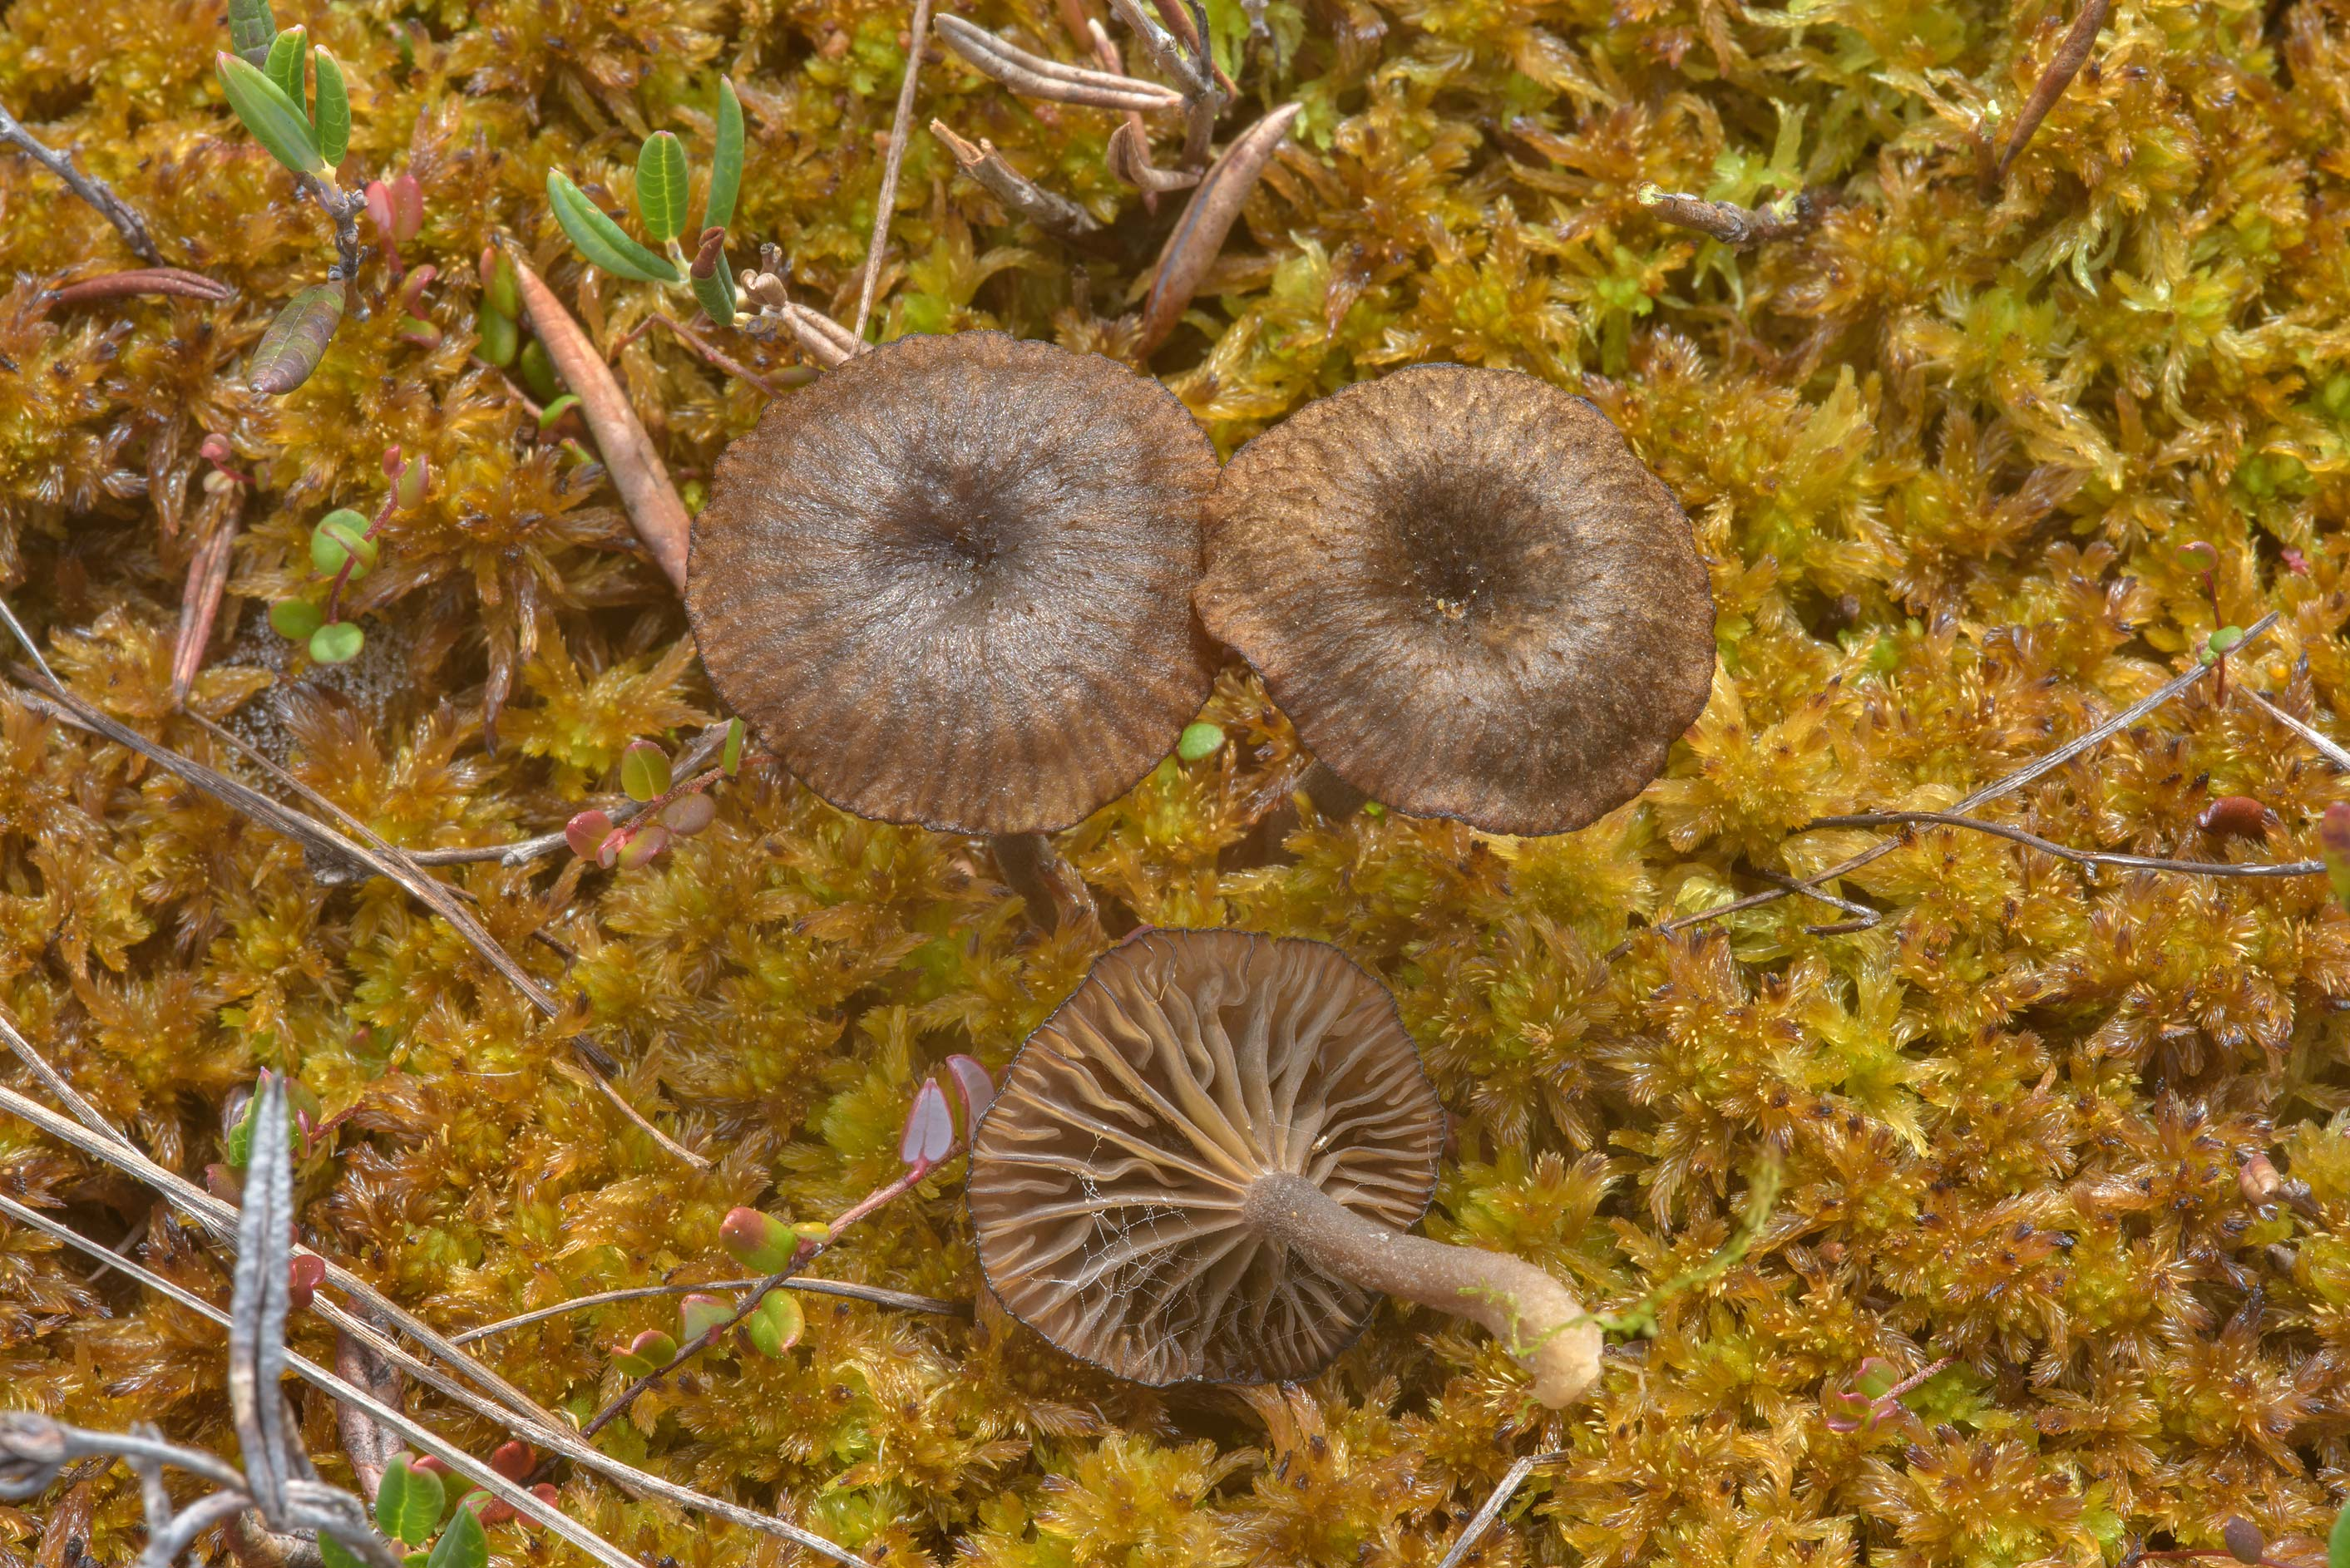 Small omphaloid mushrooms Arrhenia sphagnicola in...Zelenogorsk near St.Petersburg, Russia